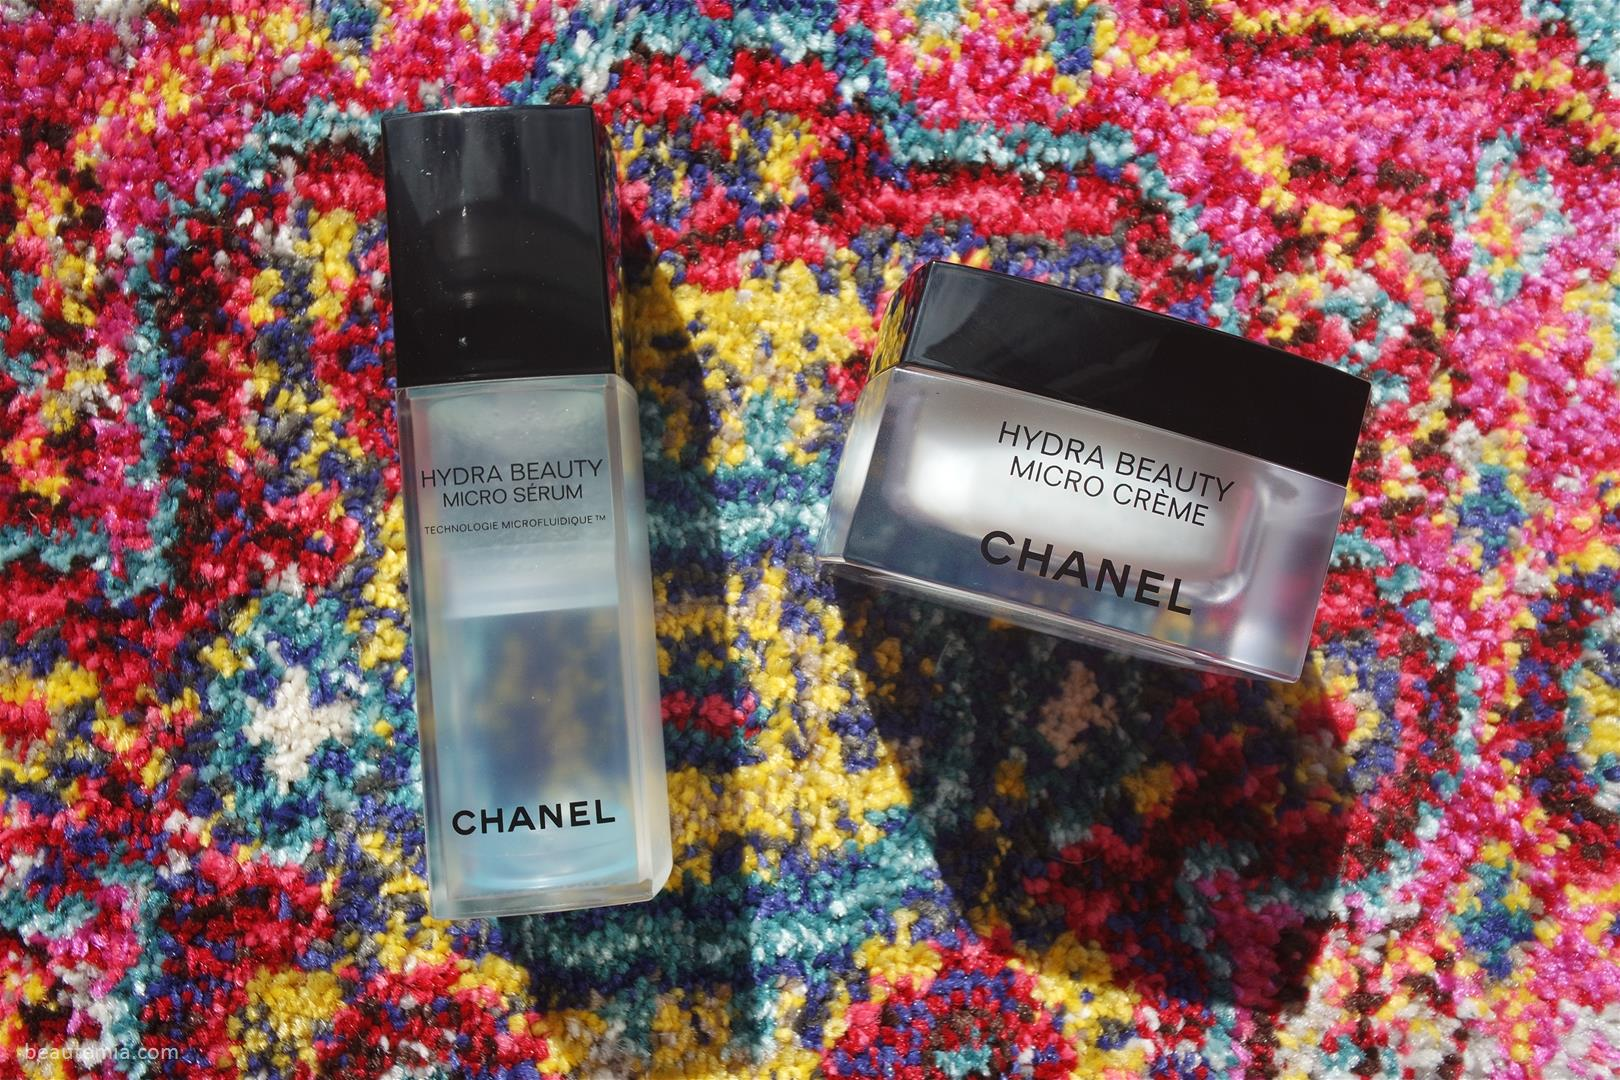 Chanel Hydra Beauty Micro Creme, Chanel Hydra Beauty Micro Serum, Chanel hydra beauty eye gel & Chanel hydra beauty mask